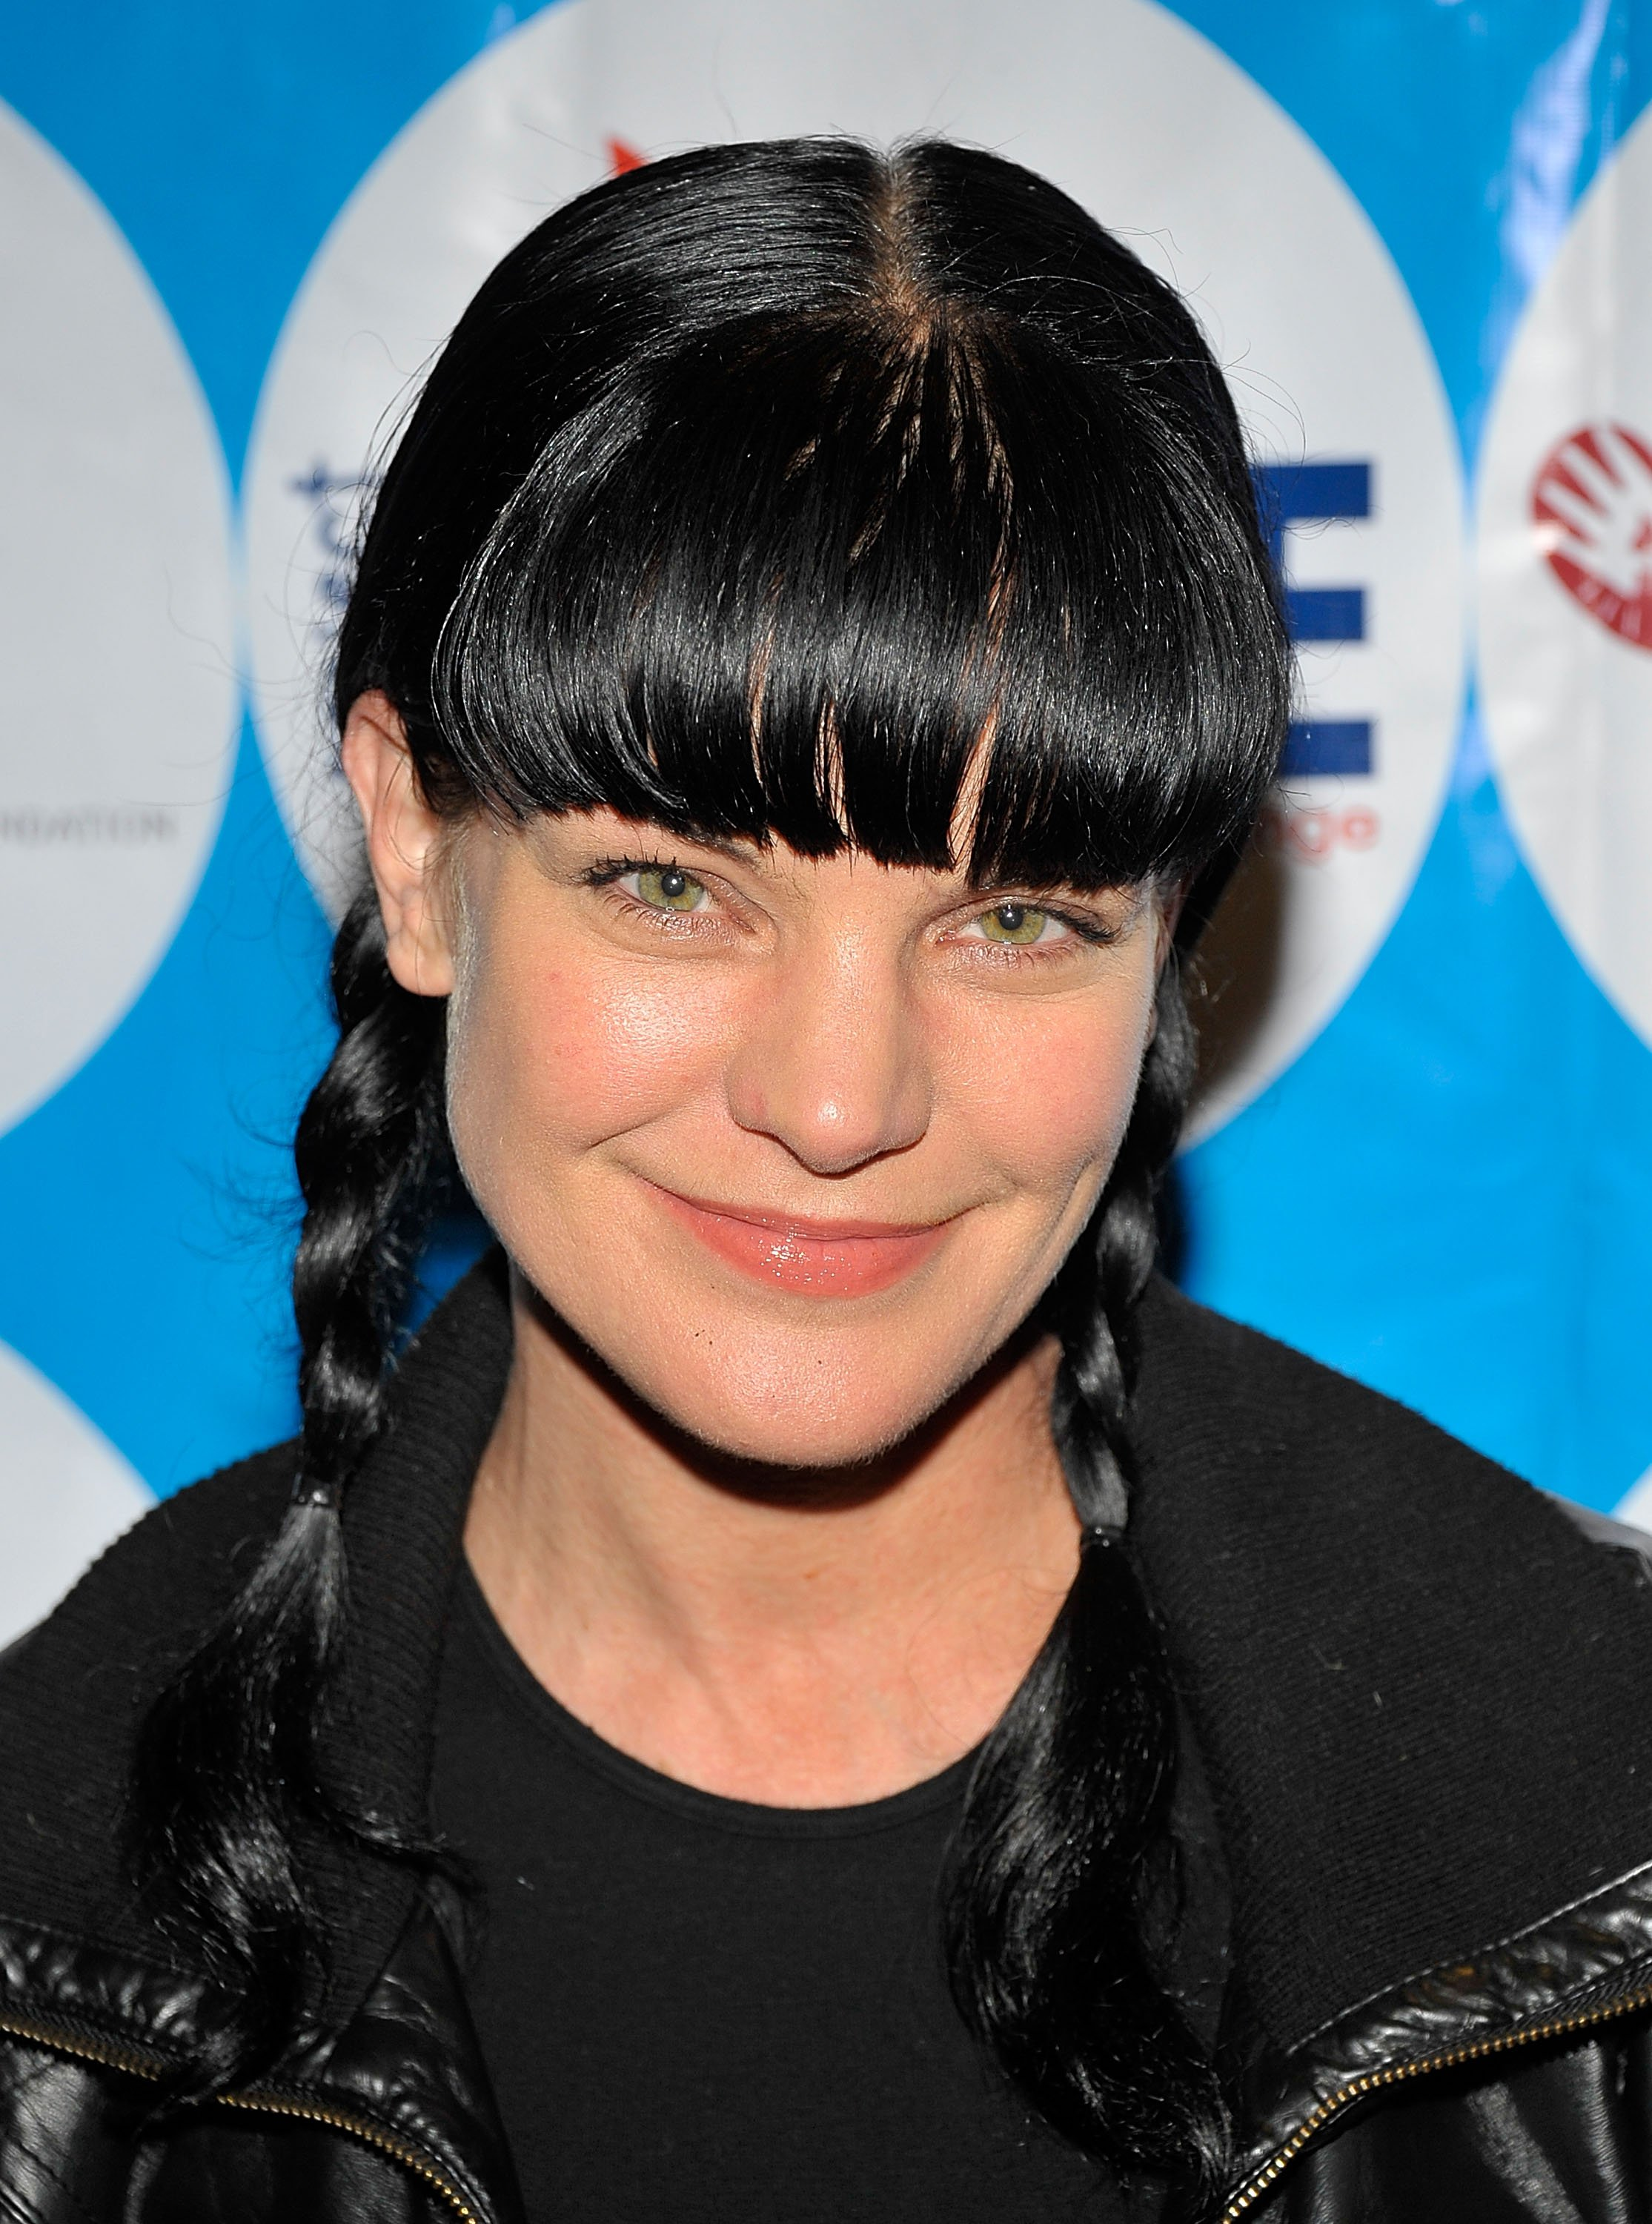 Actress Pauley Perrette at the UCLA Dance Marathon benefiting Pediatric AIDS Coalition on February 19, 2011 |Photo:Getty Images